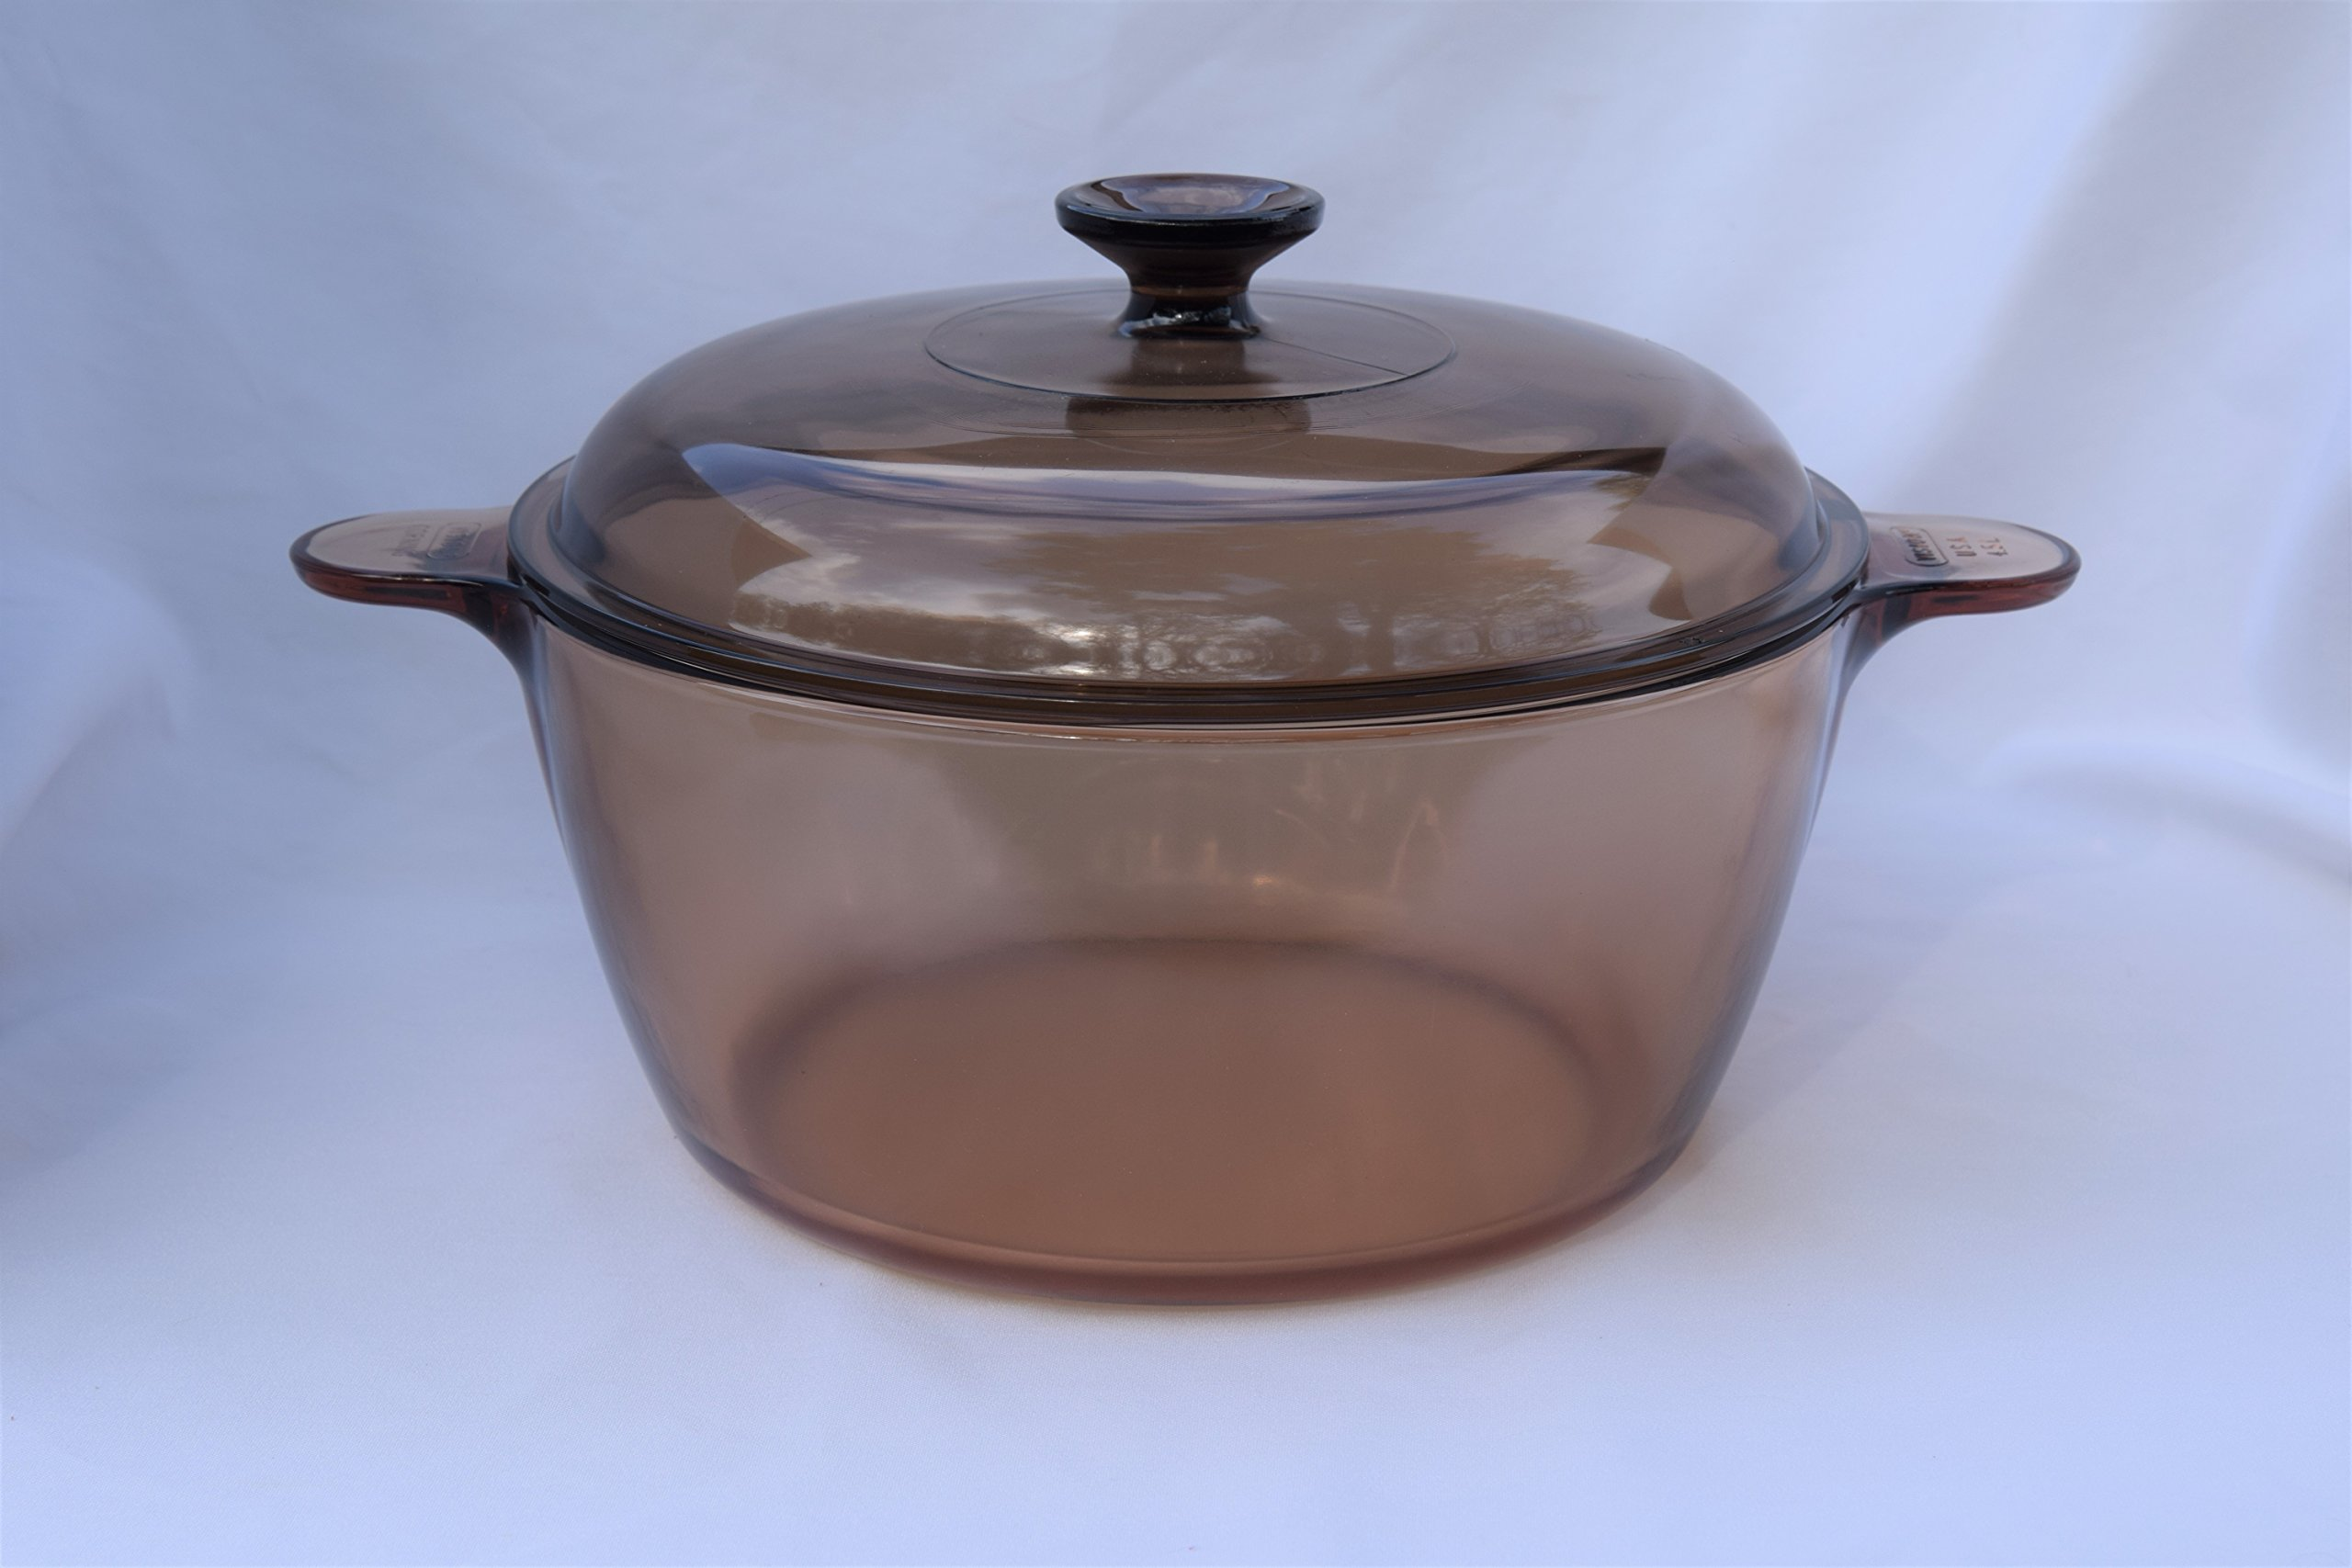 Vintage Corning Ware Pyrex VISION Visions Visionware AMBER ALL GLASS 4.75 Quart/4.5 Litre 10 1/2'' inch SAUCEPAN DUTCH OVEN ROASTER PAN + Cover/Lid stamped MADE IN USA